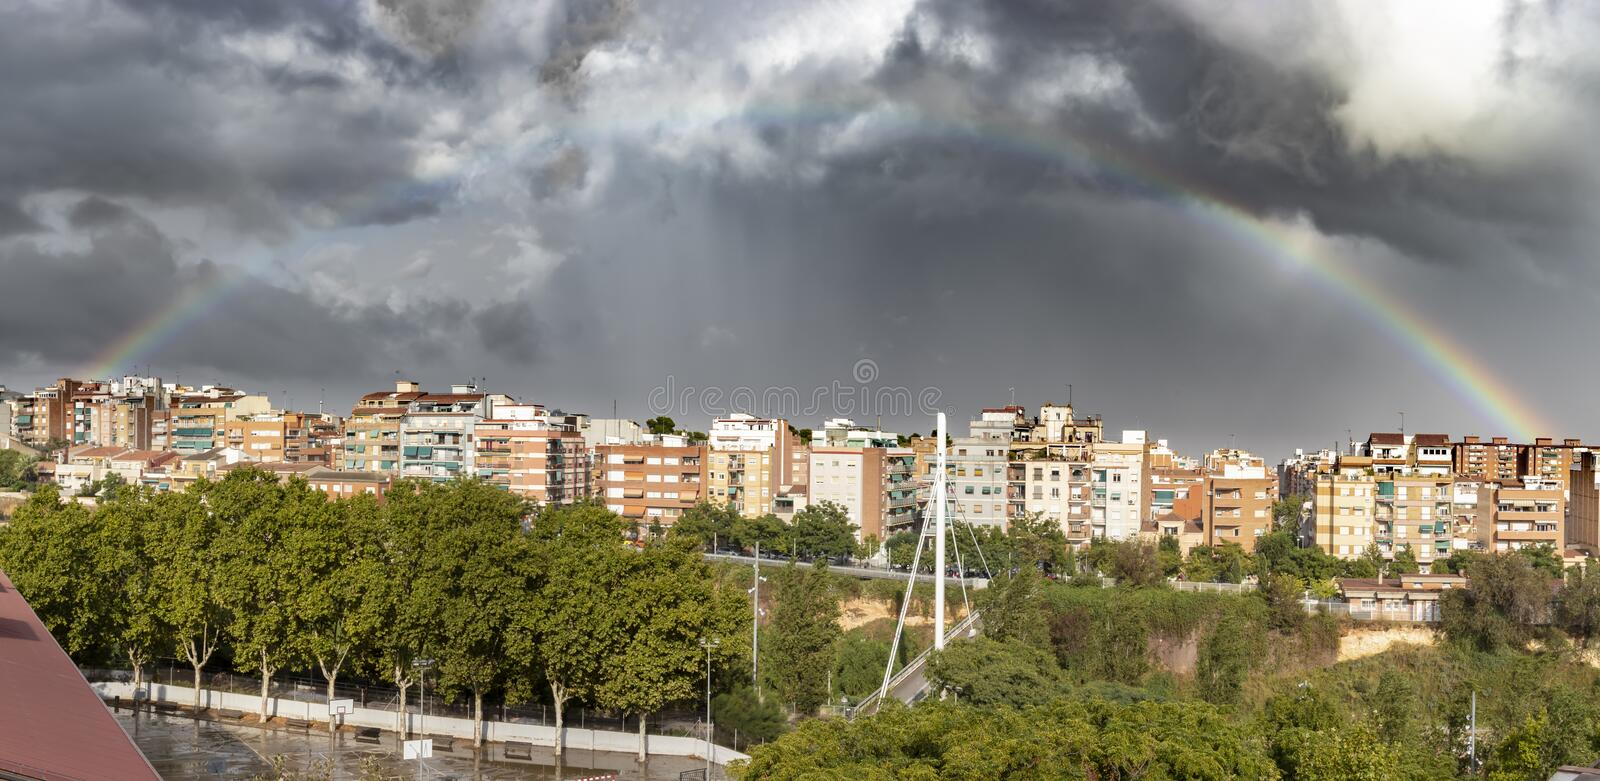 Stunning rainbow appearing through the clouds after a thunderstorm in a city. Image taken in Esplugues de Llobregat, Spain royalty free stock photos